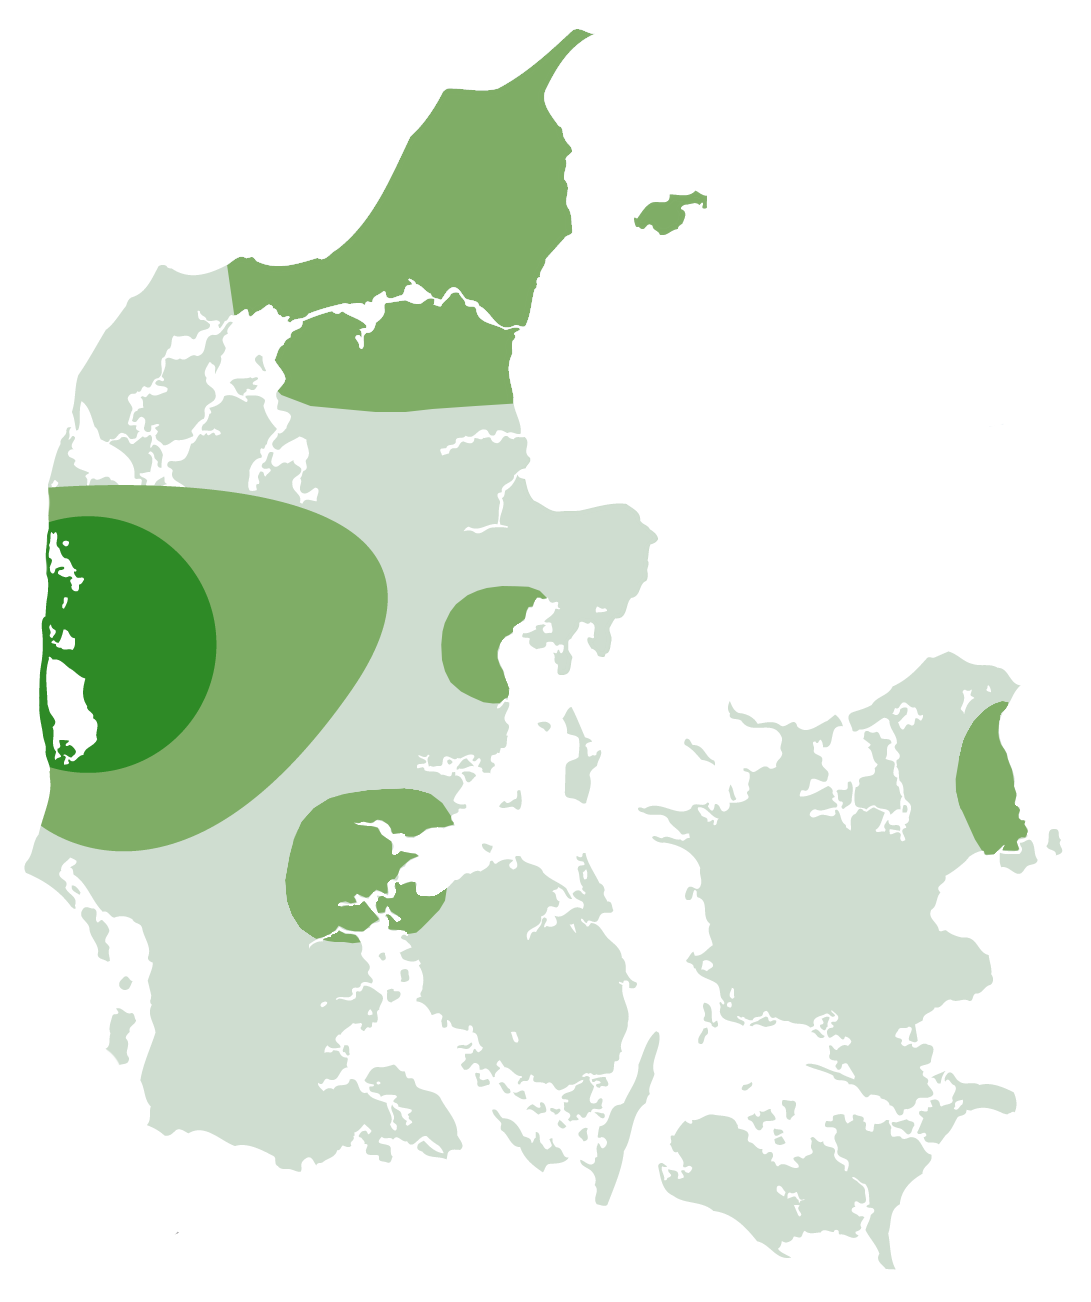 Map of Denmark with a high level of market share.